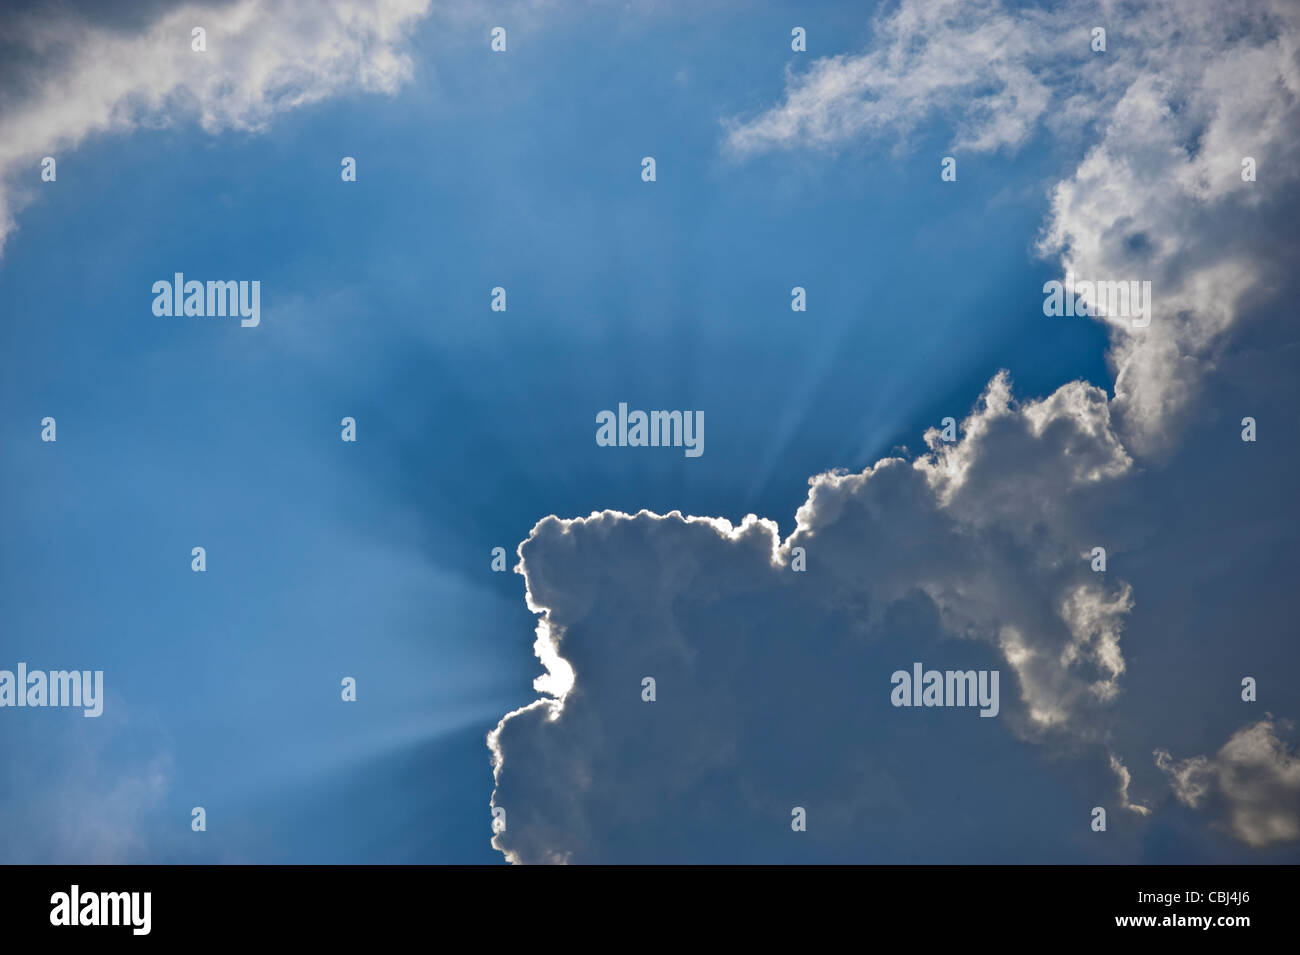 Sun Burst Angel Rays Through Clouds - Stock Image